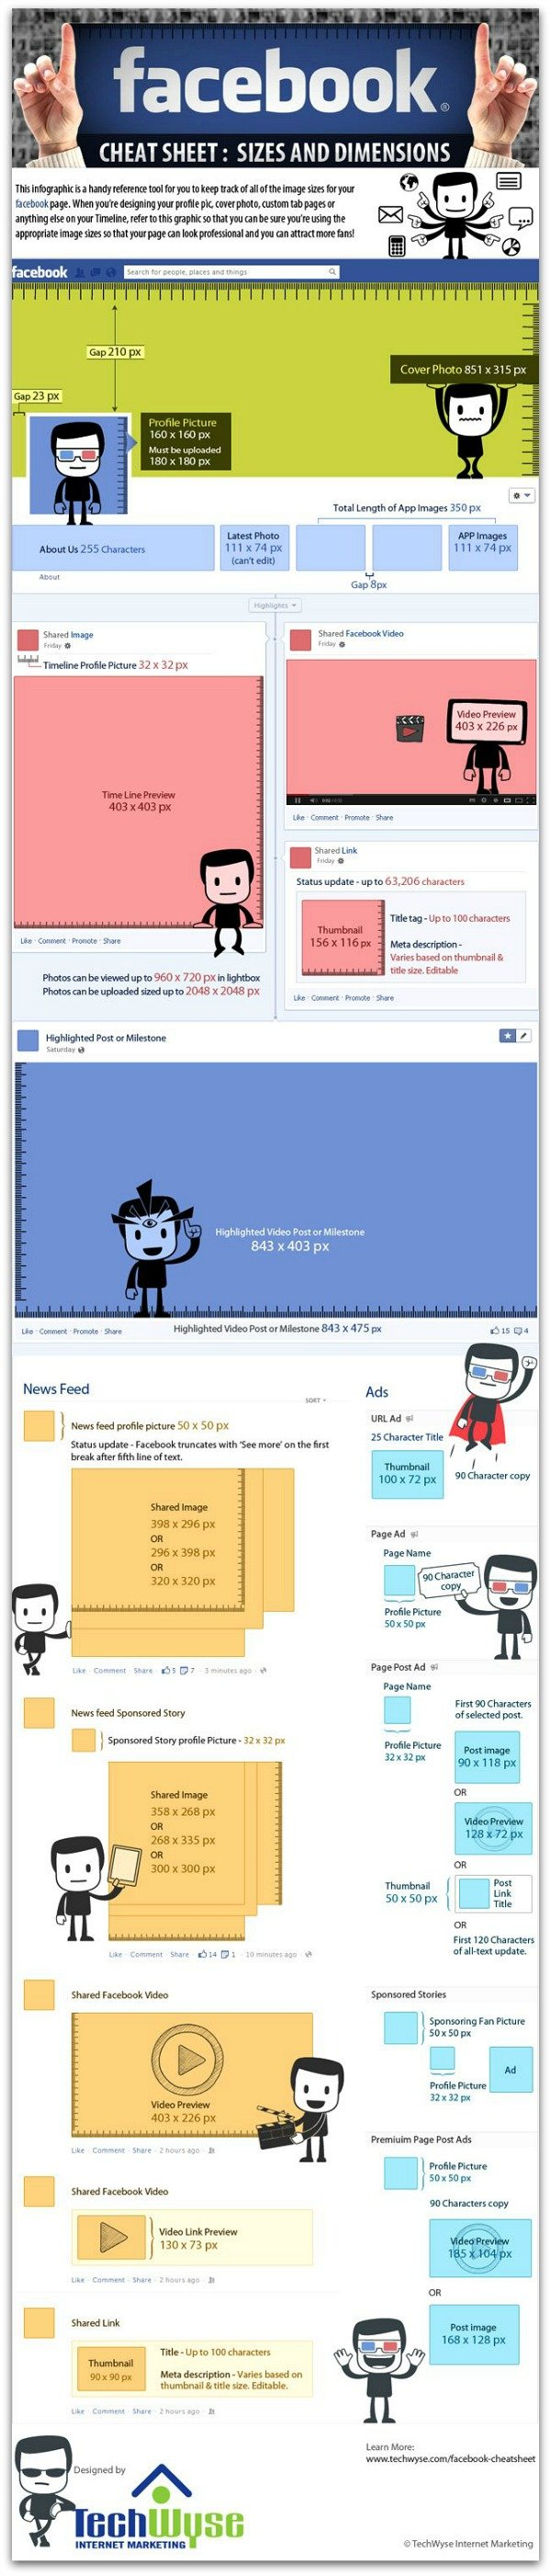 Facebook_Image_Sizes_Cheat_Sheet_Infographic